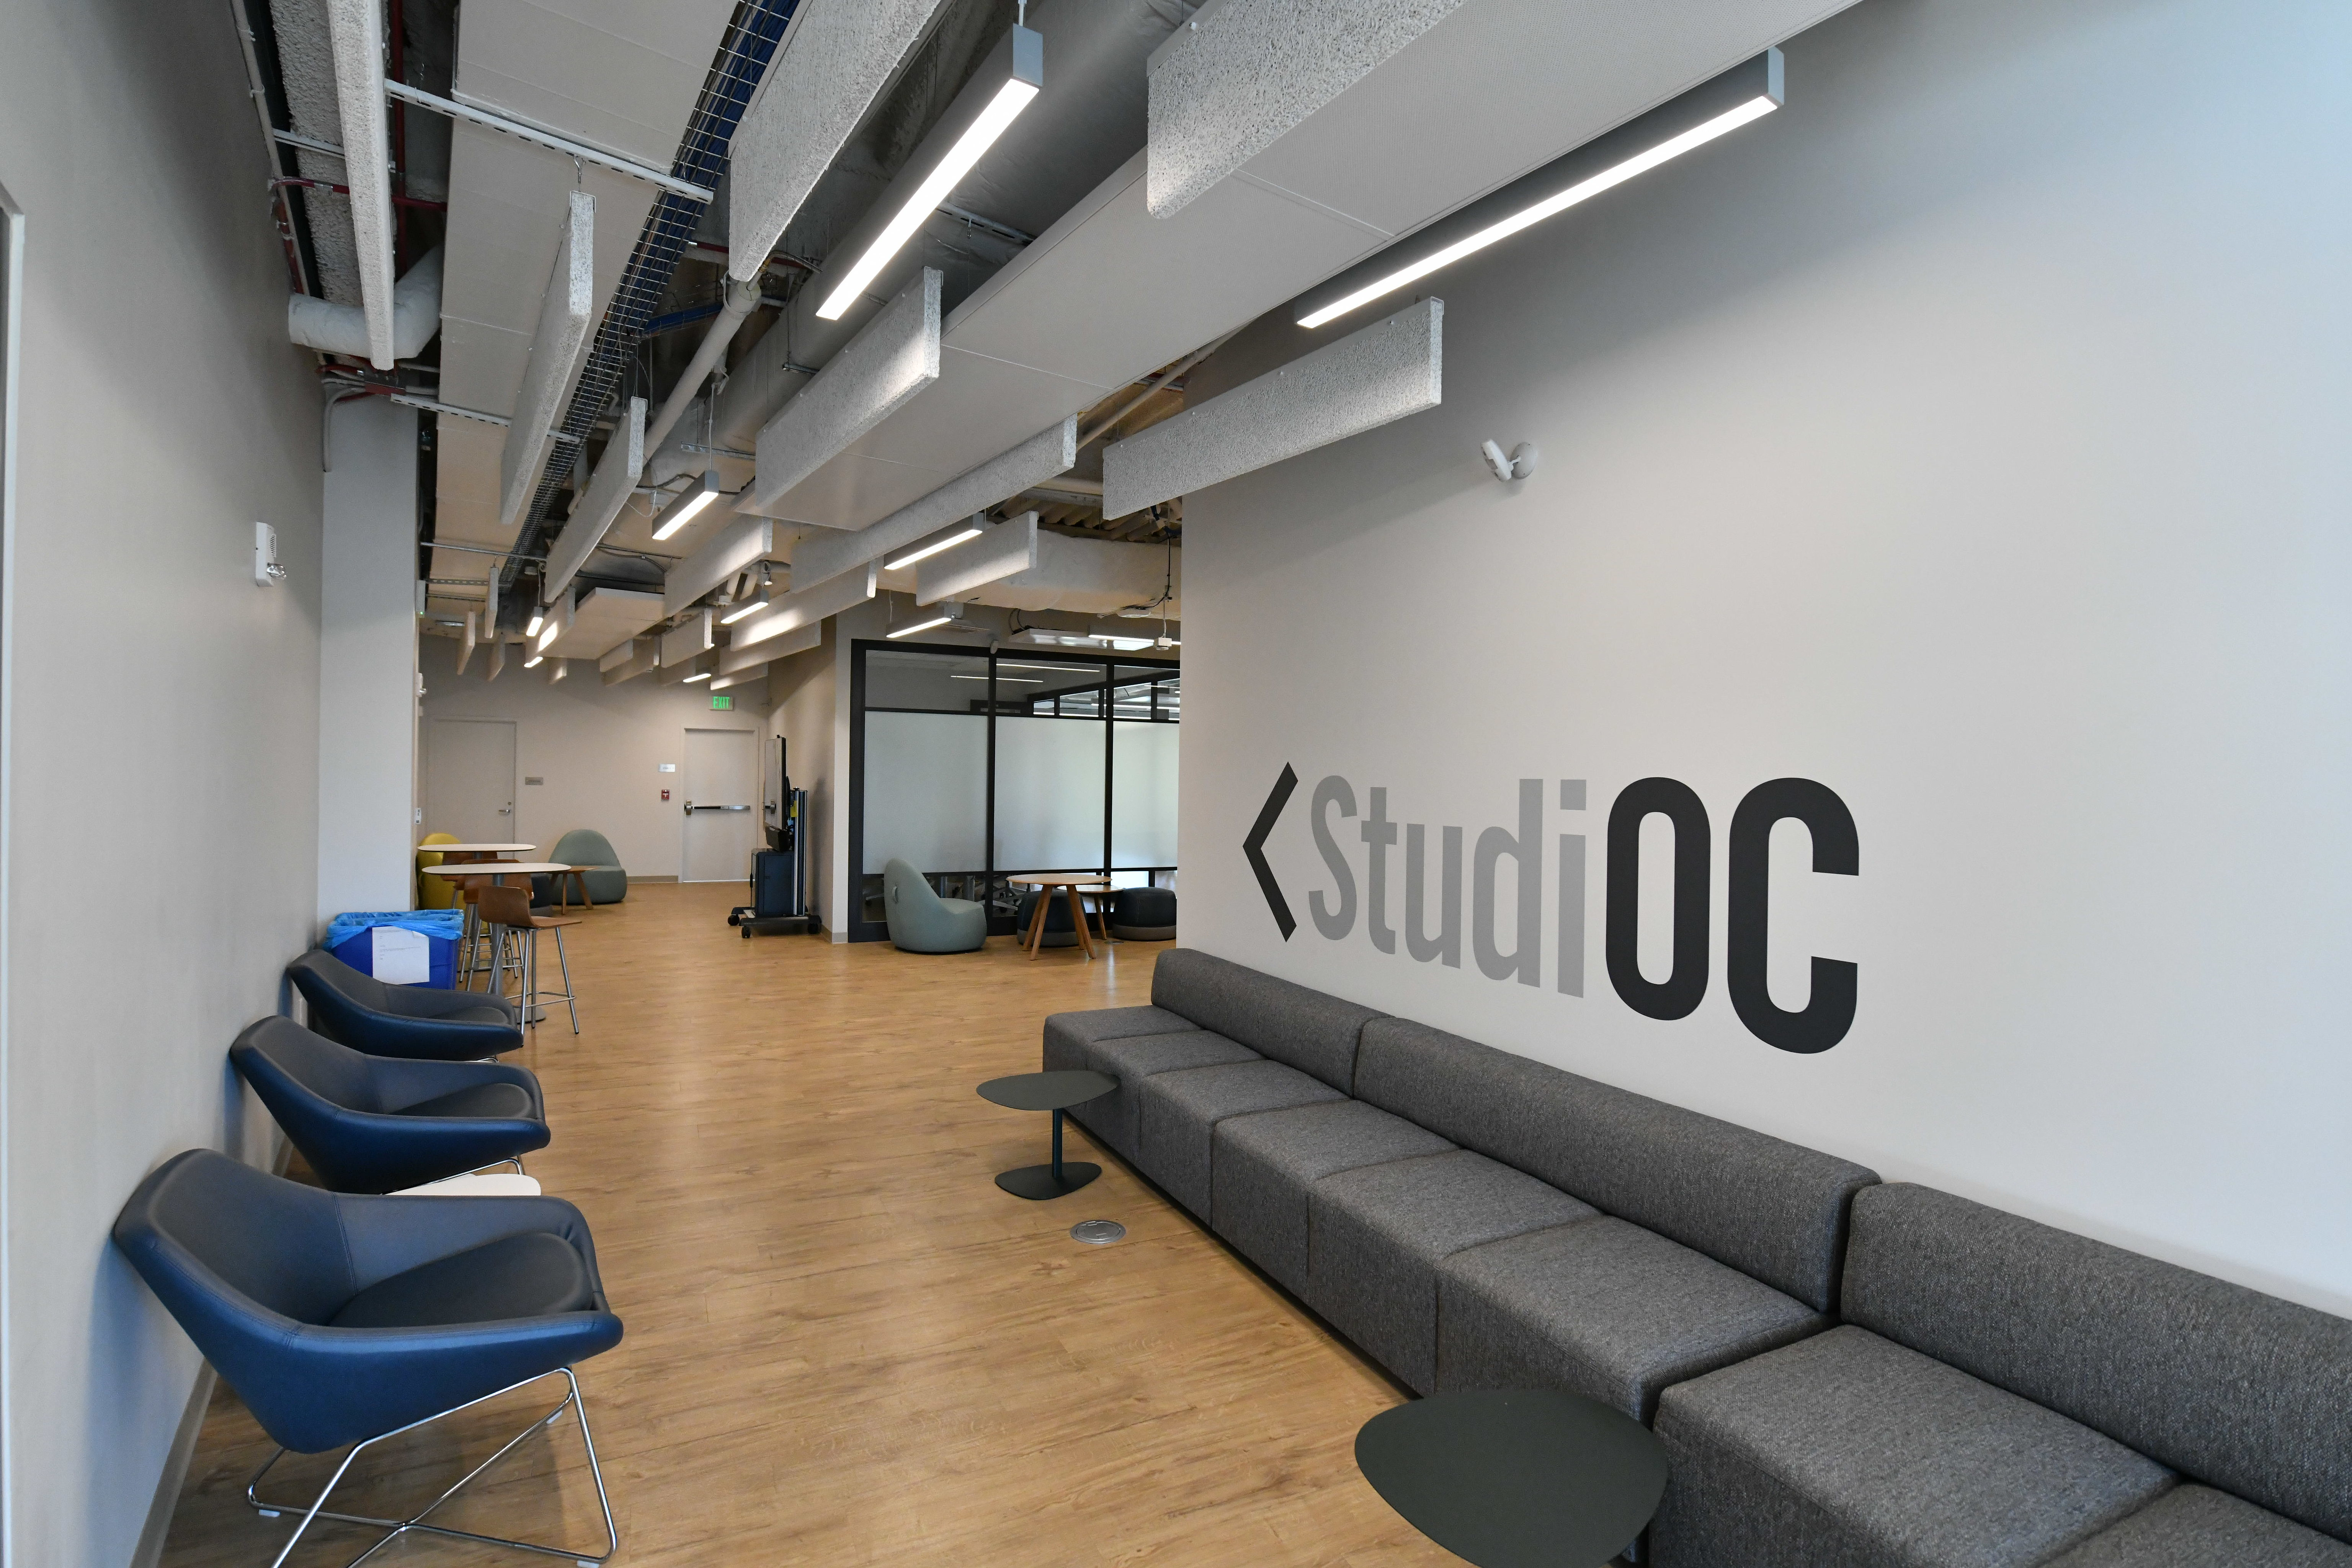 Oberlin Center for Convergence (StudiOC) is both a modern and flexible educational space and a method for faculty in the college and conservatory to pursue multidisciplinary collaboration.